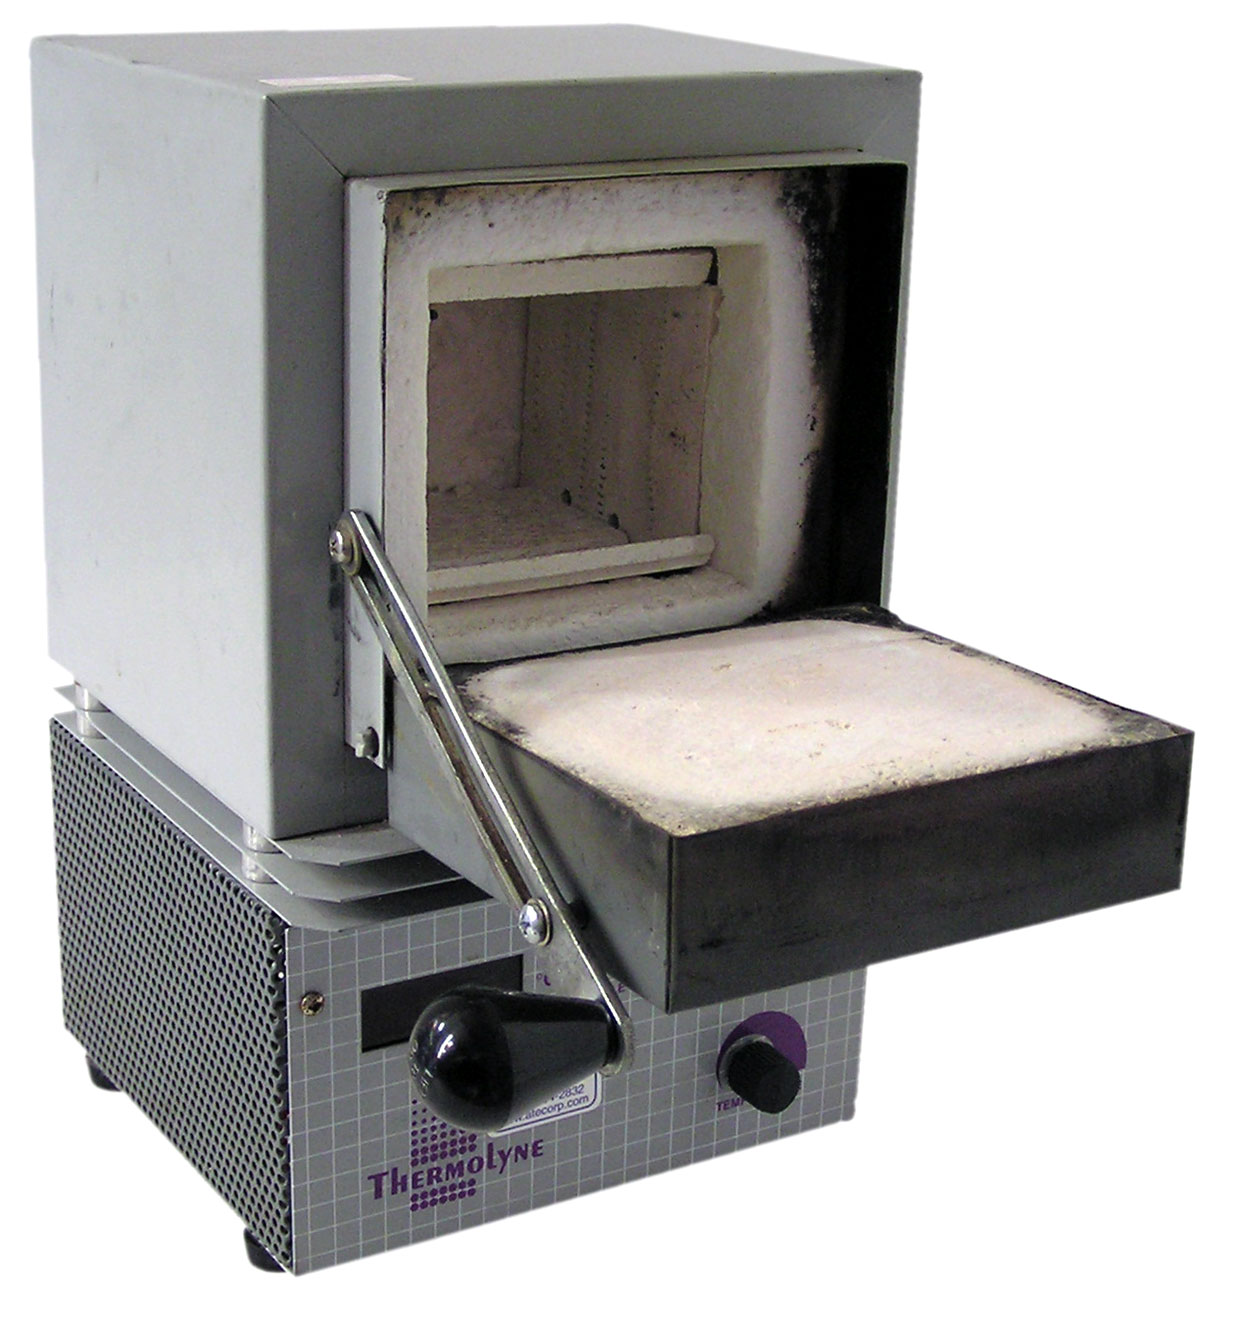 Barnstead/Thermolyne FB1315M Small Benchtop Muffle Furnace